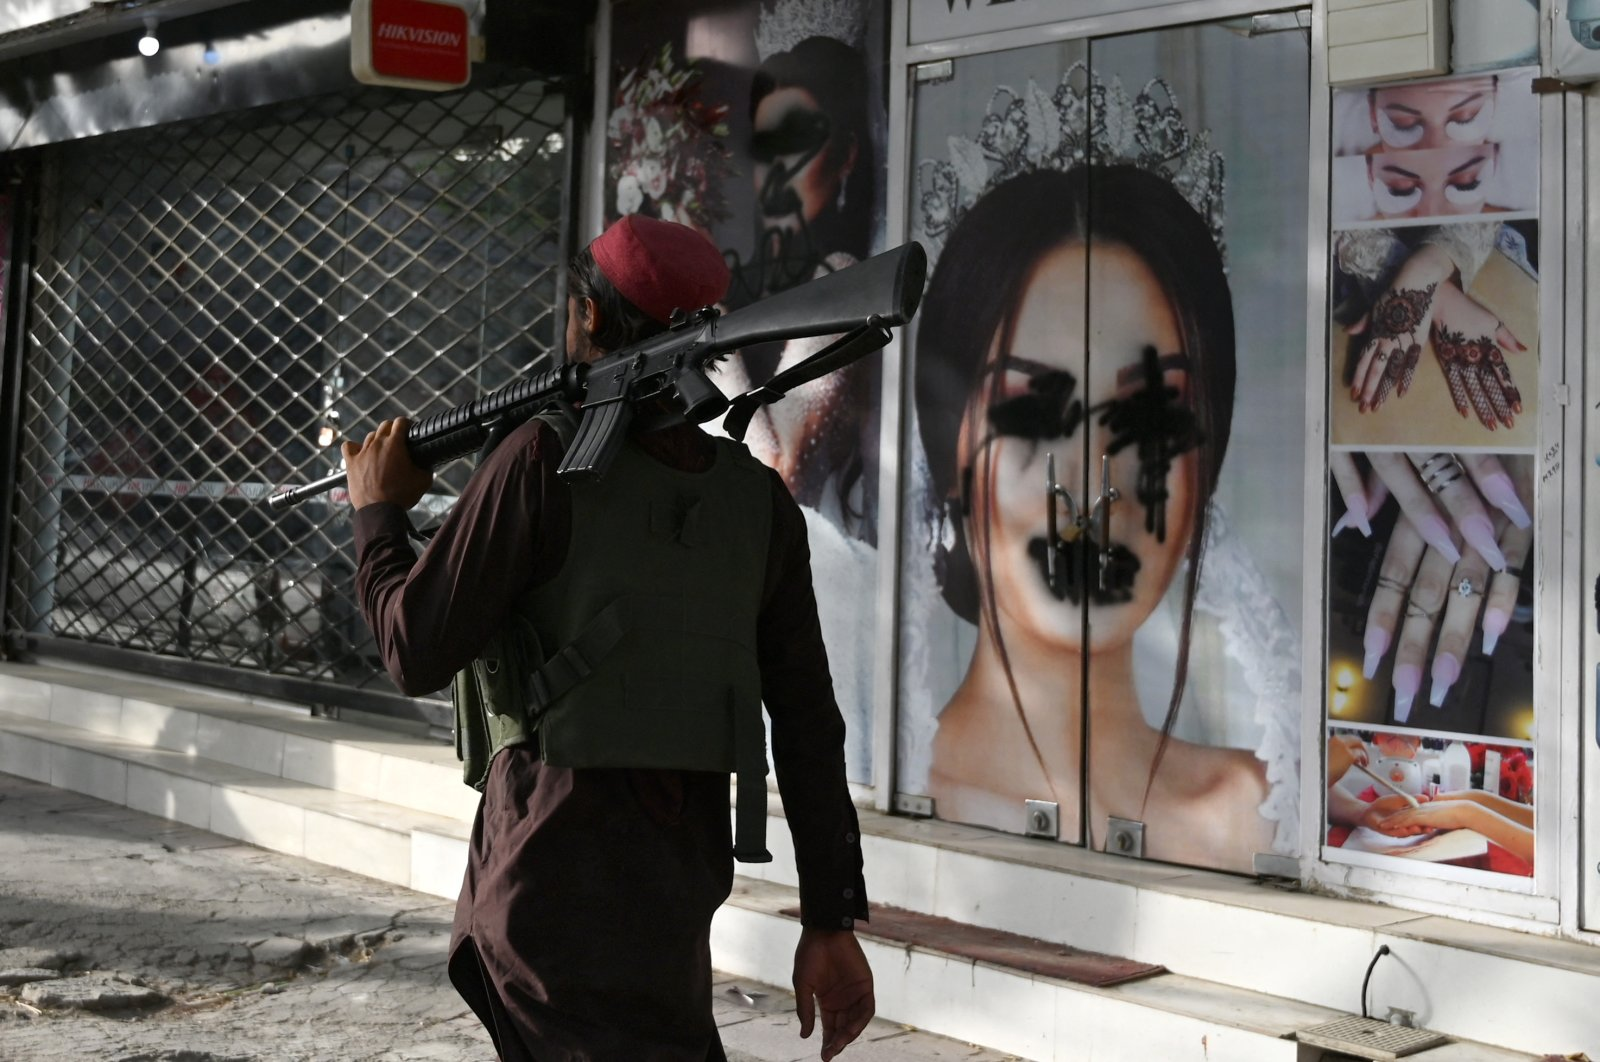 A Taliban fighter walks past a beauty salon with images of women defaced using spray paint in Shar-e-Naw in Kabul, Afghanistan, Aug. 18, 2021. (AFP Photo)